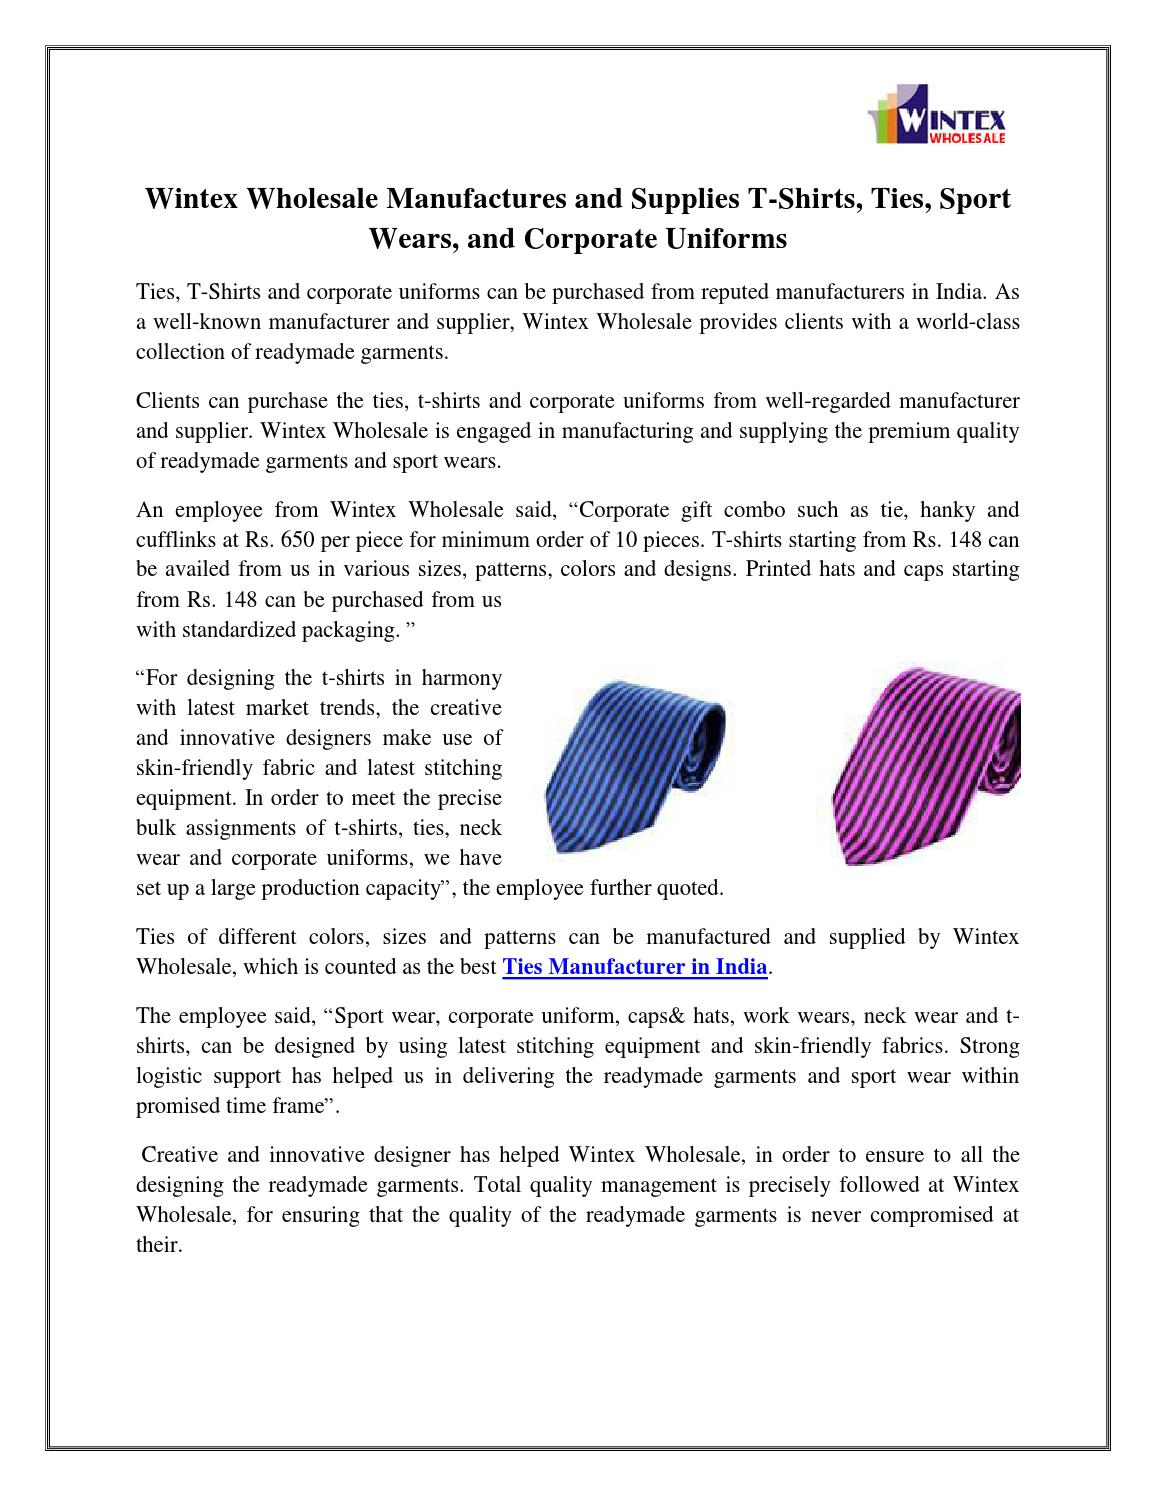 Wintex wholesale manufactures and supplies t shirts, ties